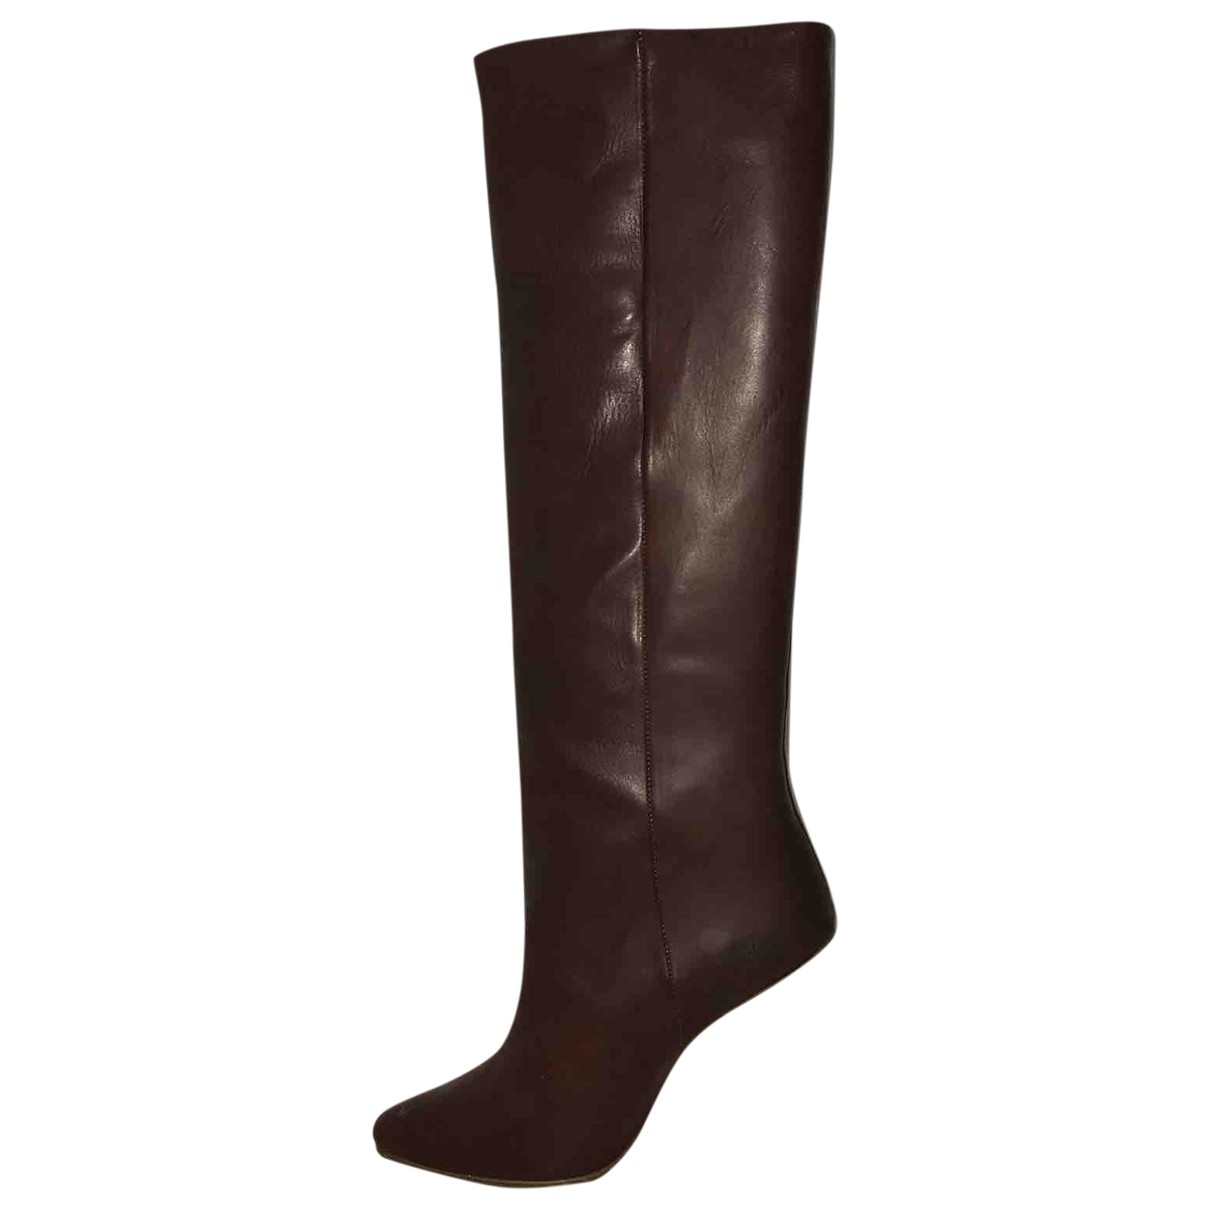 Maison Martin Margiela Pour H&m \N Brown Leather Boots for Women 39 EU